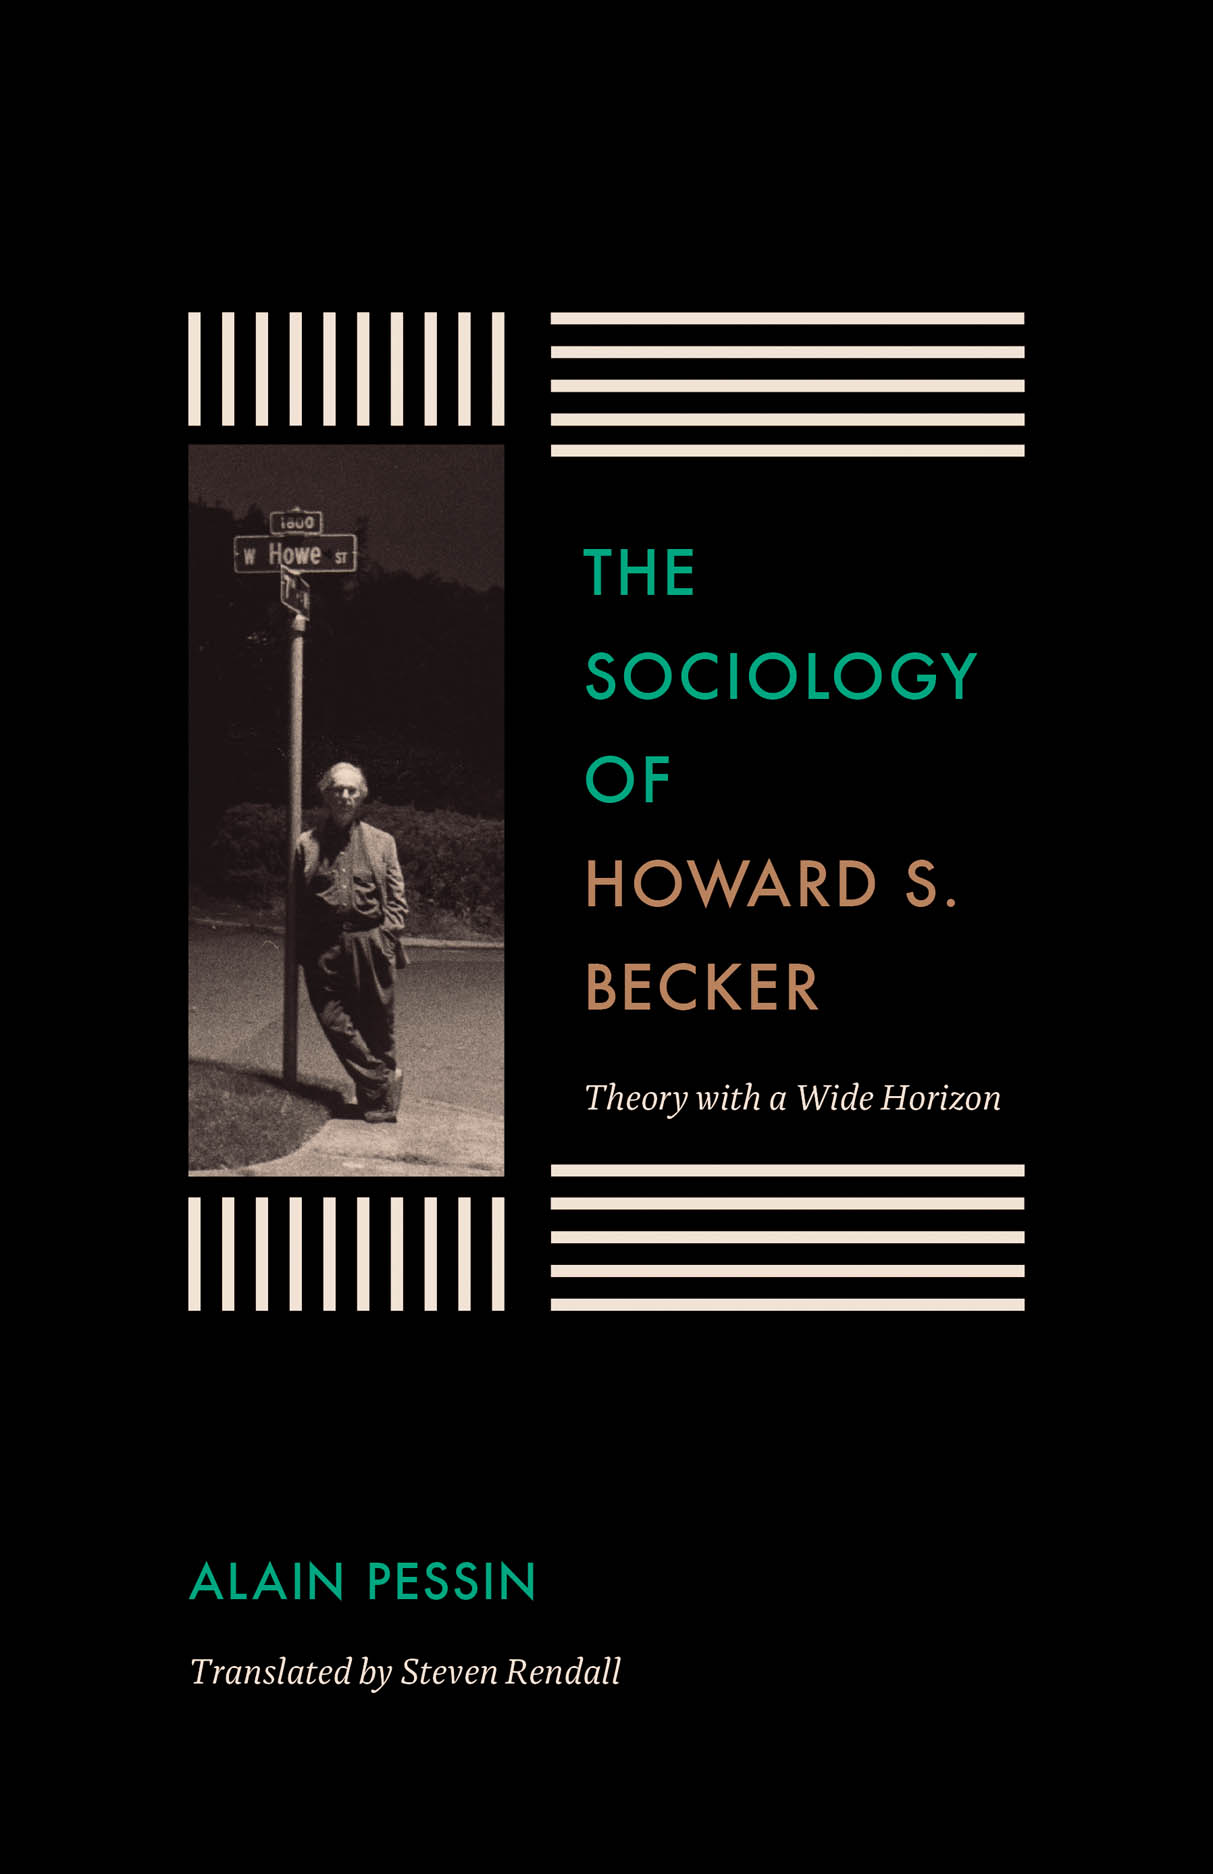 The Sociology of Howard S. Becker: Theory with a Wide Horizon